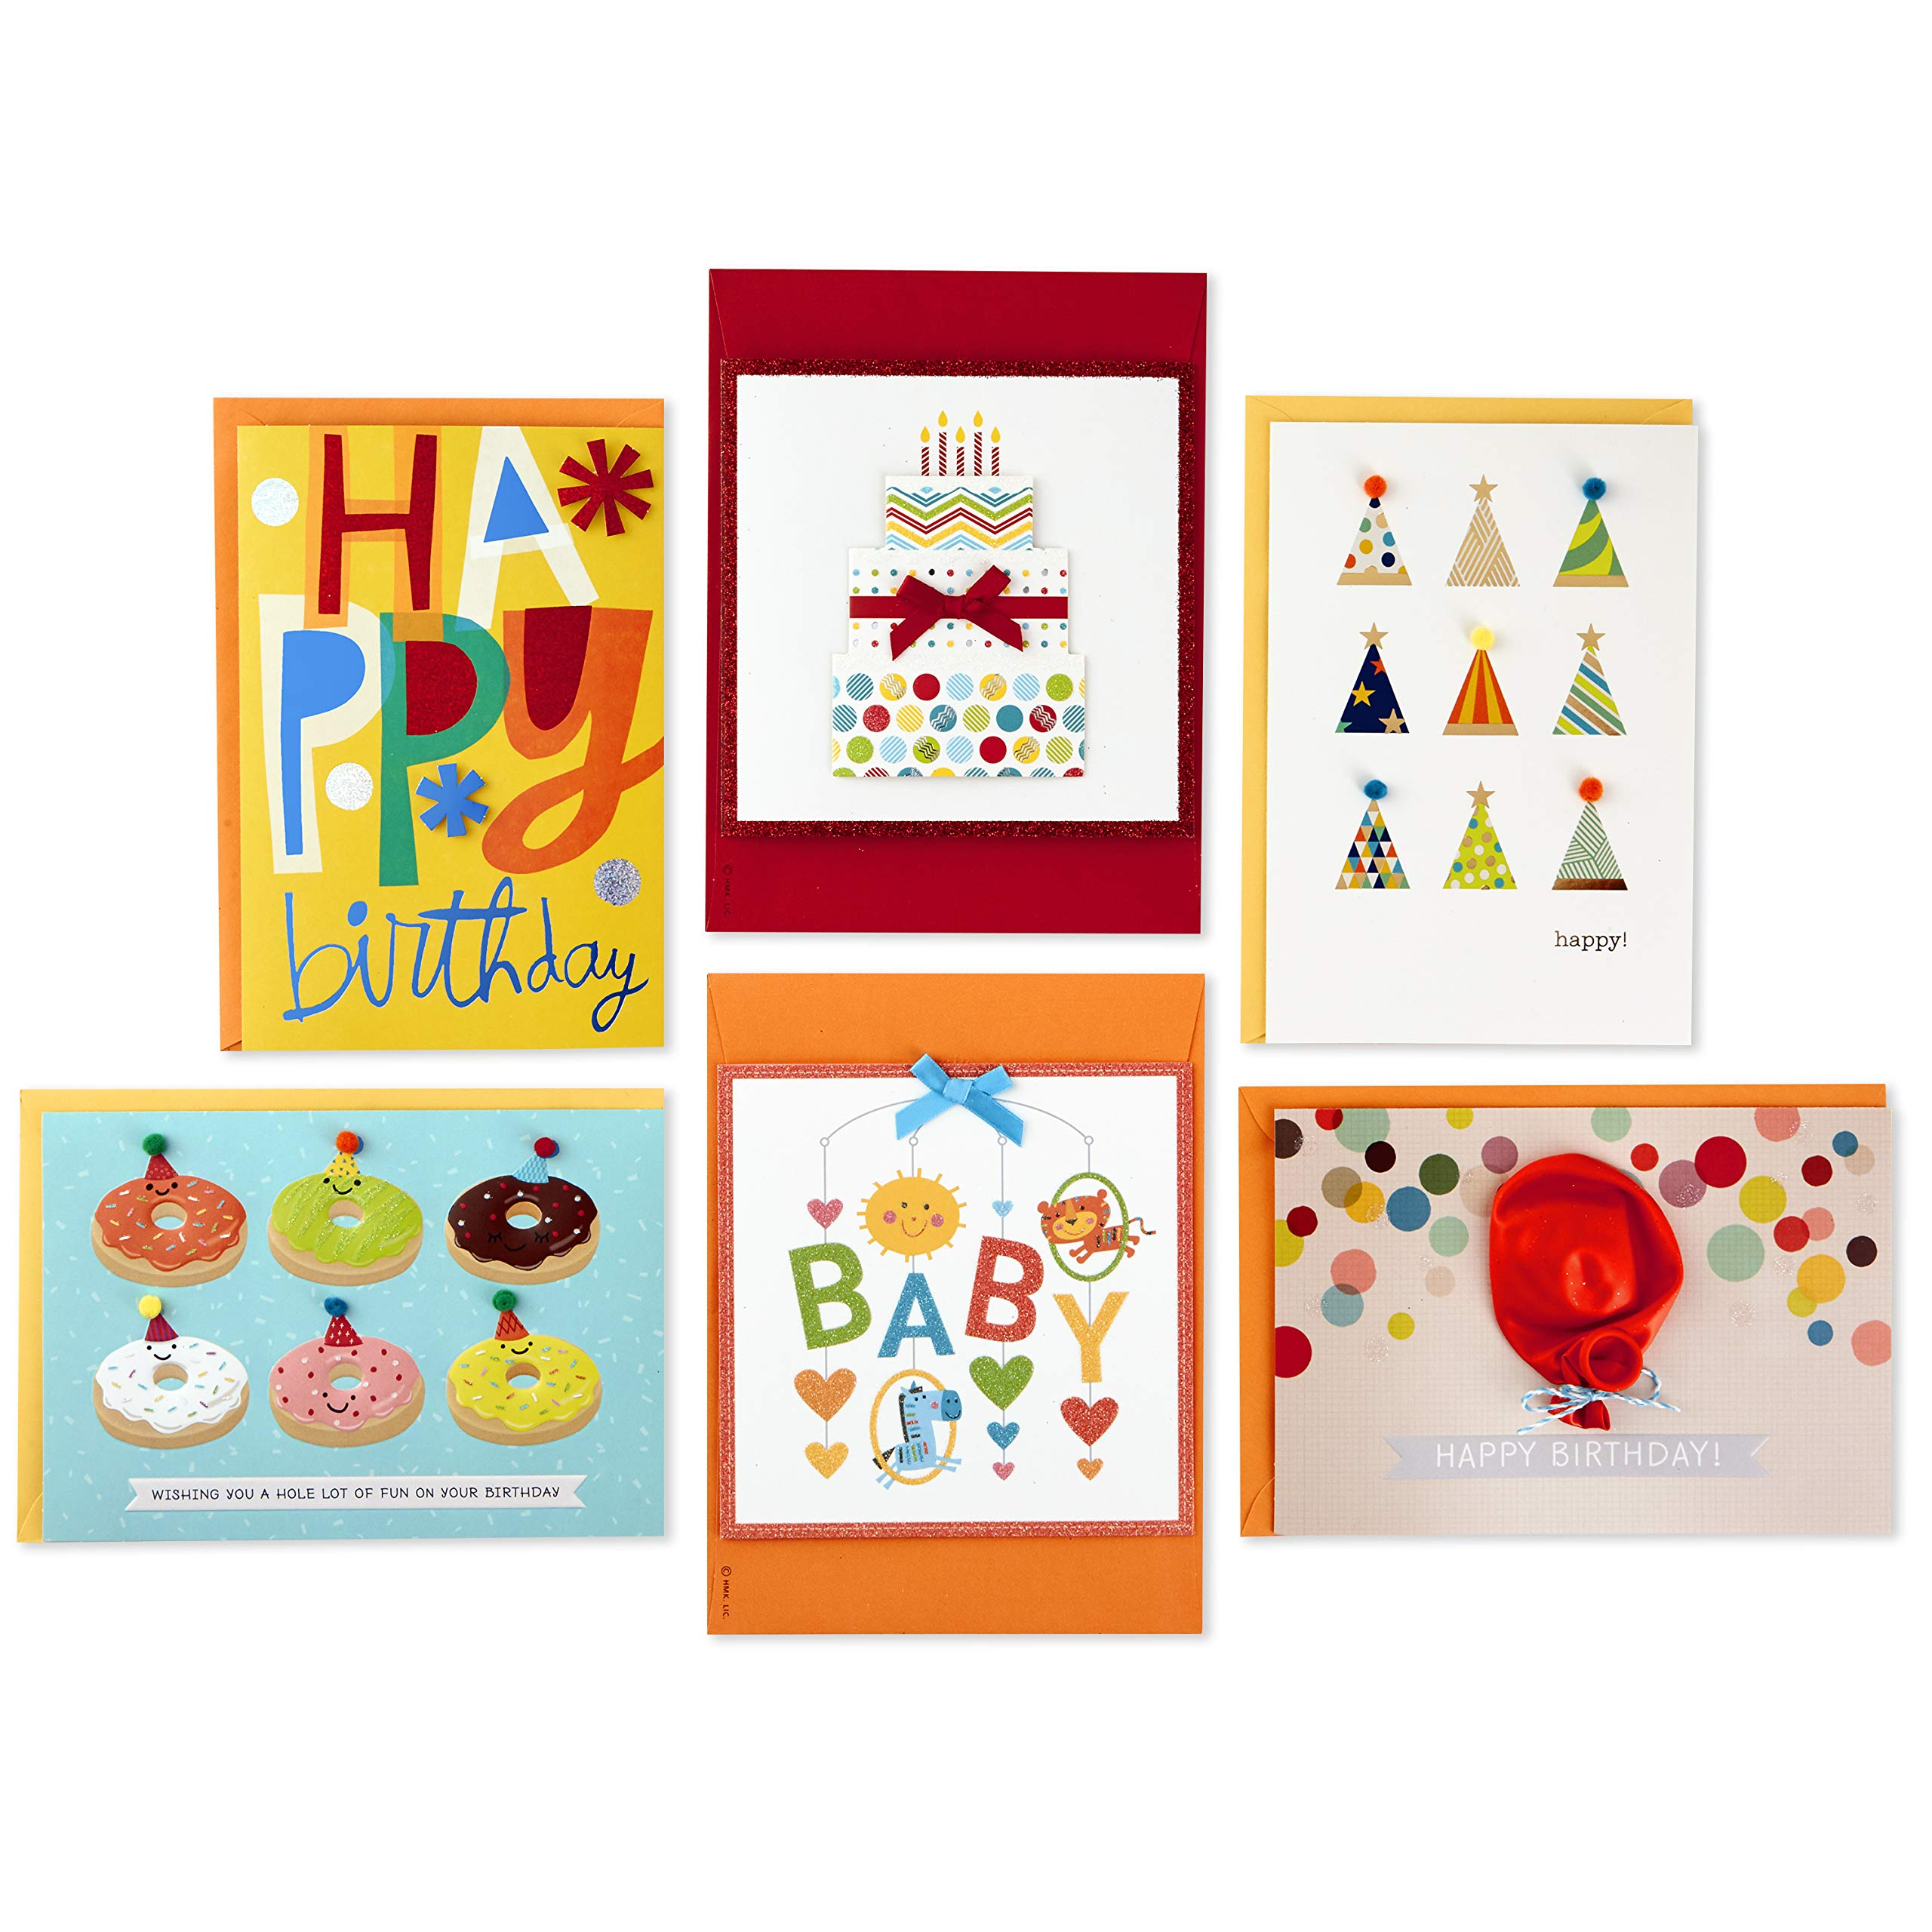 Hallmark Handmade All Occasion Boxed Greeting Card Assortment, Modern Floral (Pack of 24)-Birthday Cards, Baby Shower Cards, Wedding Cards, Sympathy Cards, Thinking of You Cards, Thank You Cards by Hallmark (Image #8)